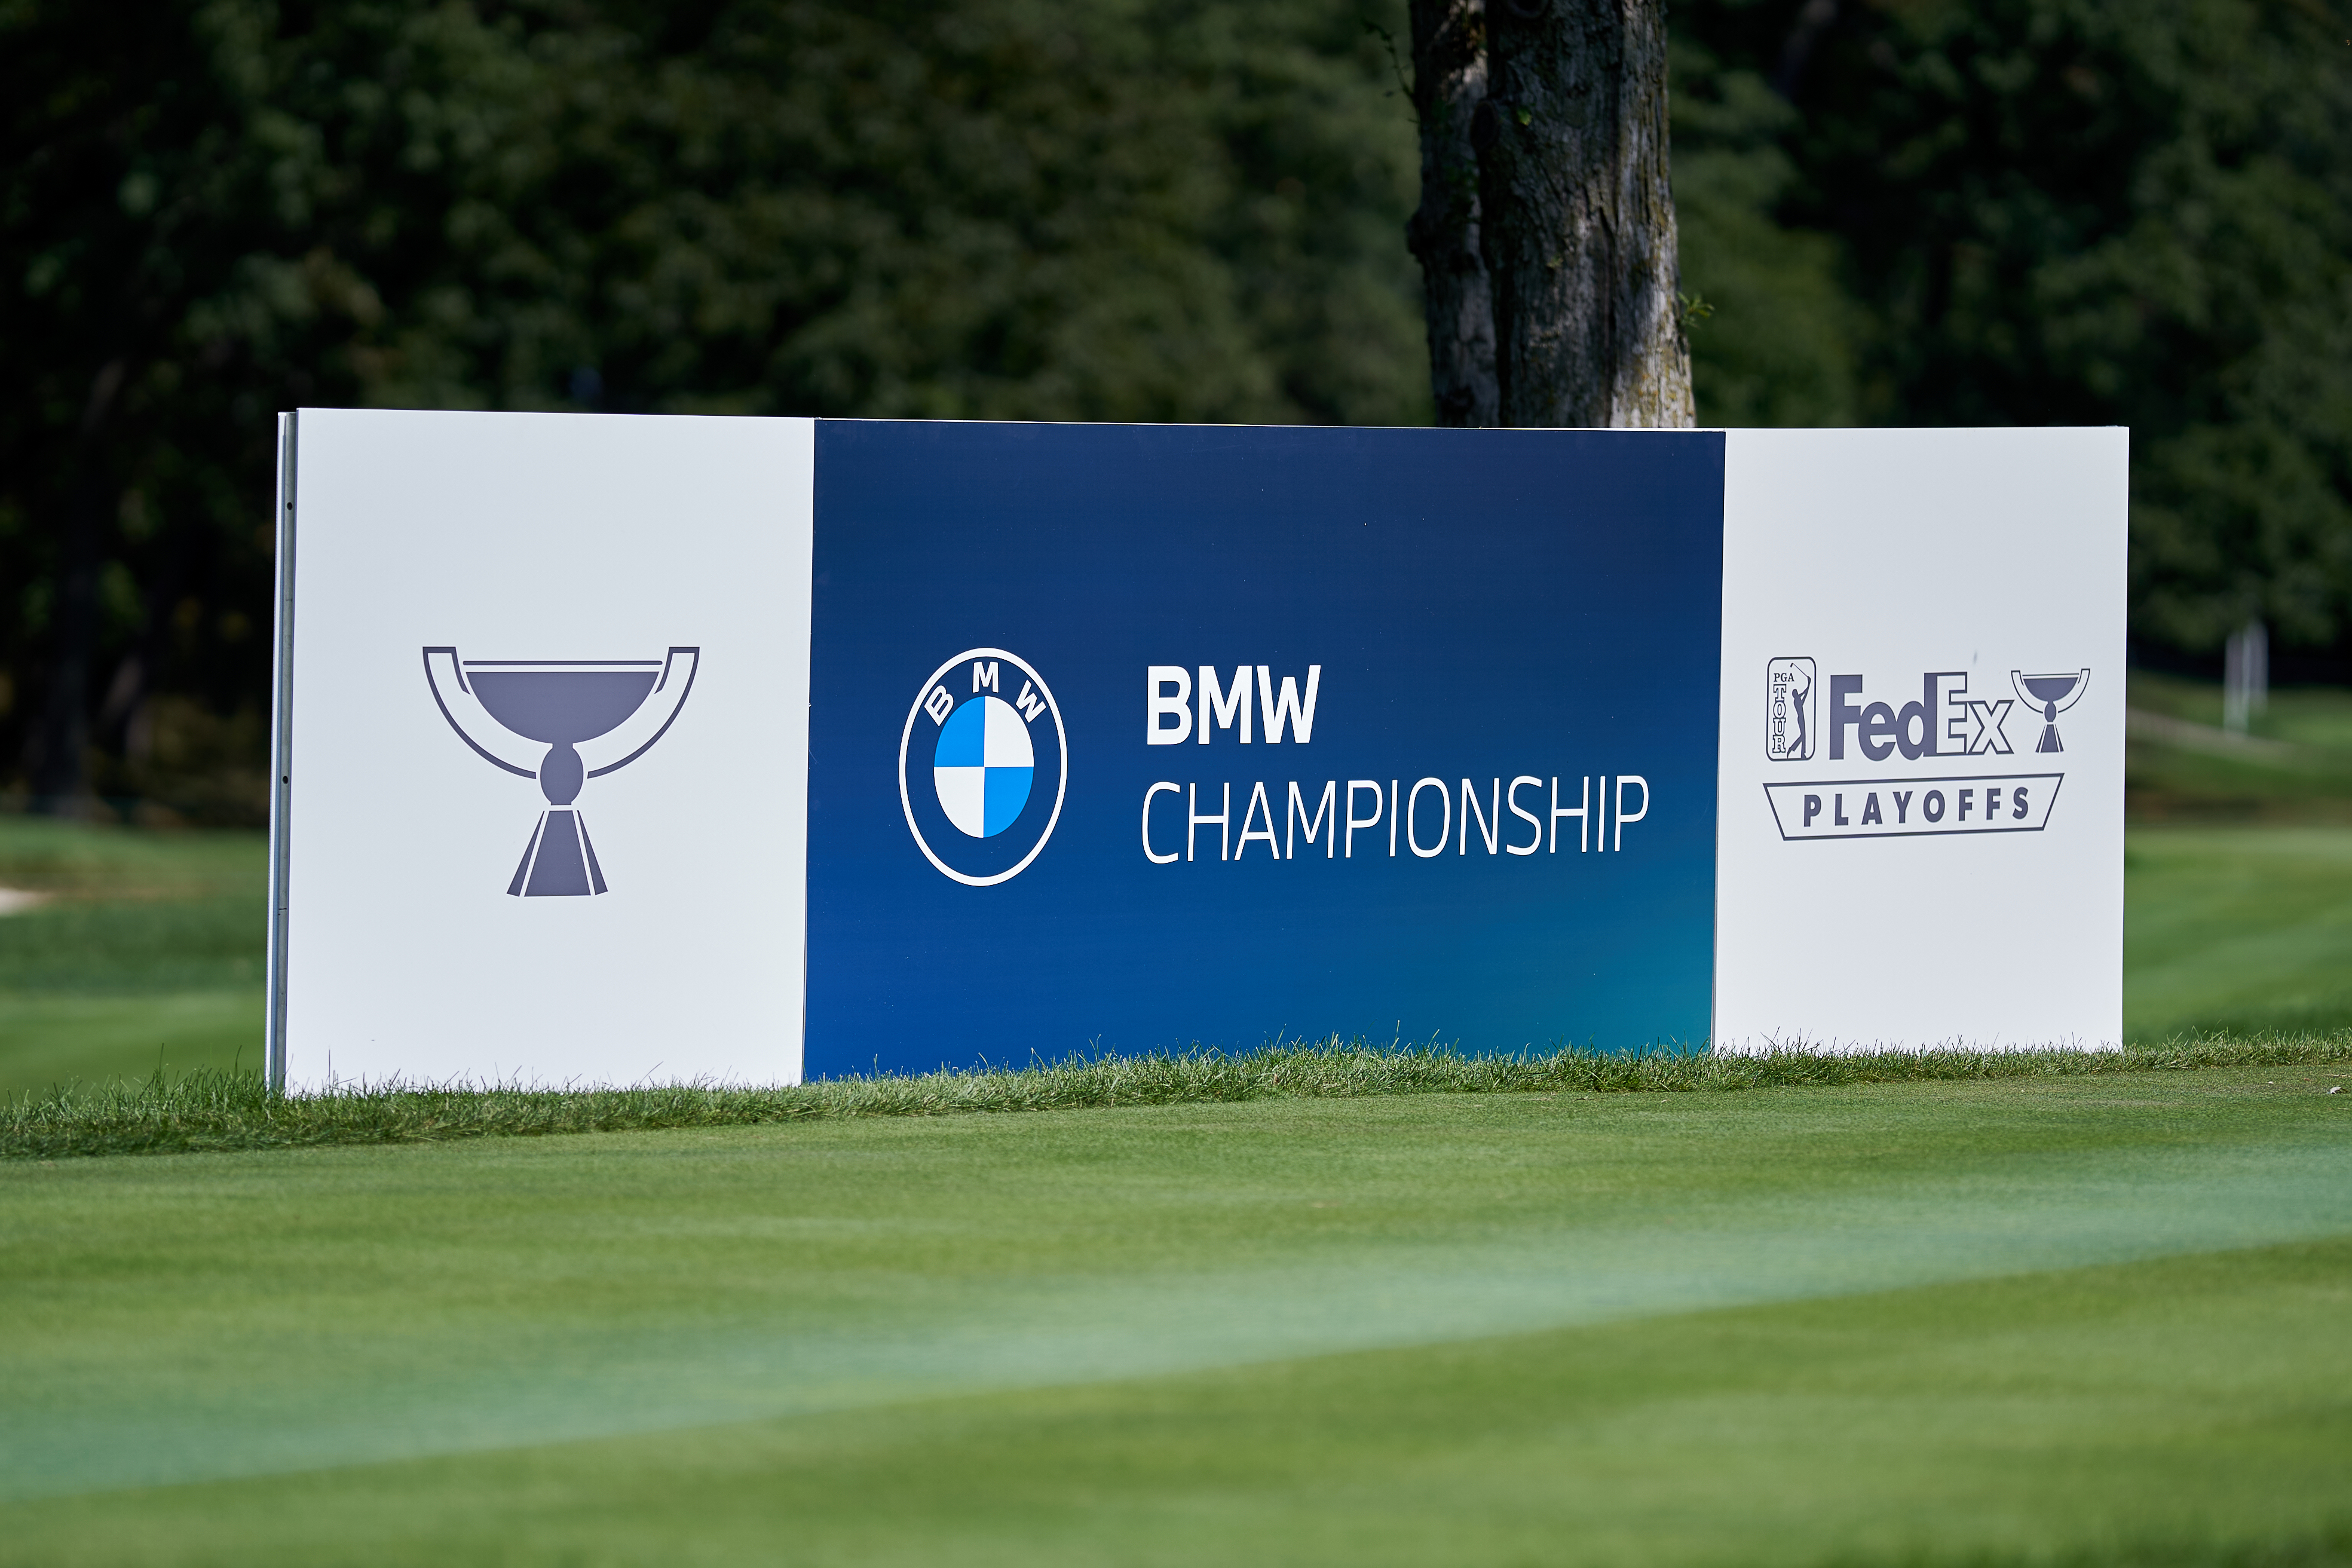 A detail view of the BMW Championship logo is seen on a field board during the first round of the BMW Championship on the North Course at Olympia Fields Country Club on August 27, 2020 in Olympia Fields, Illinois.